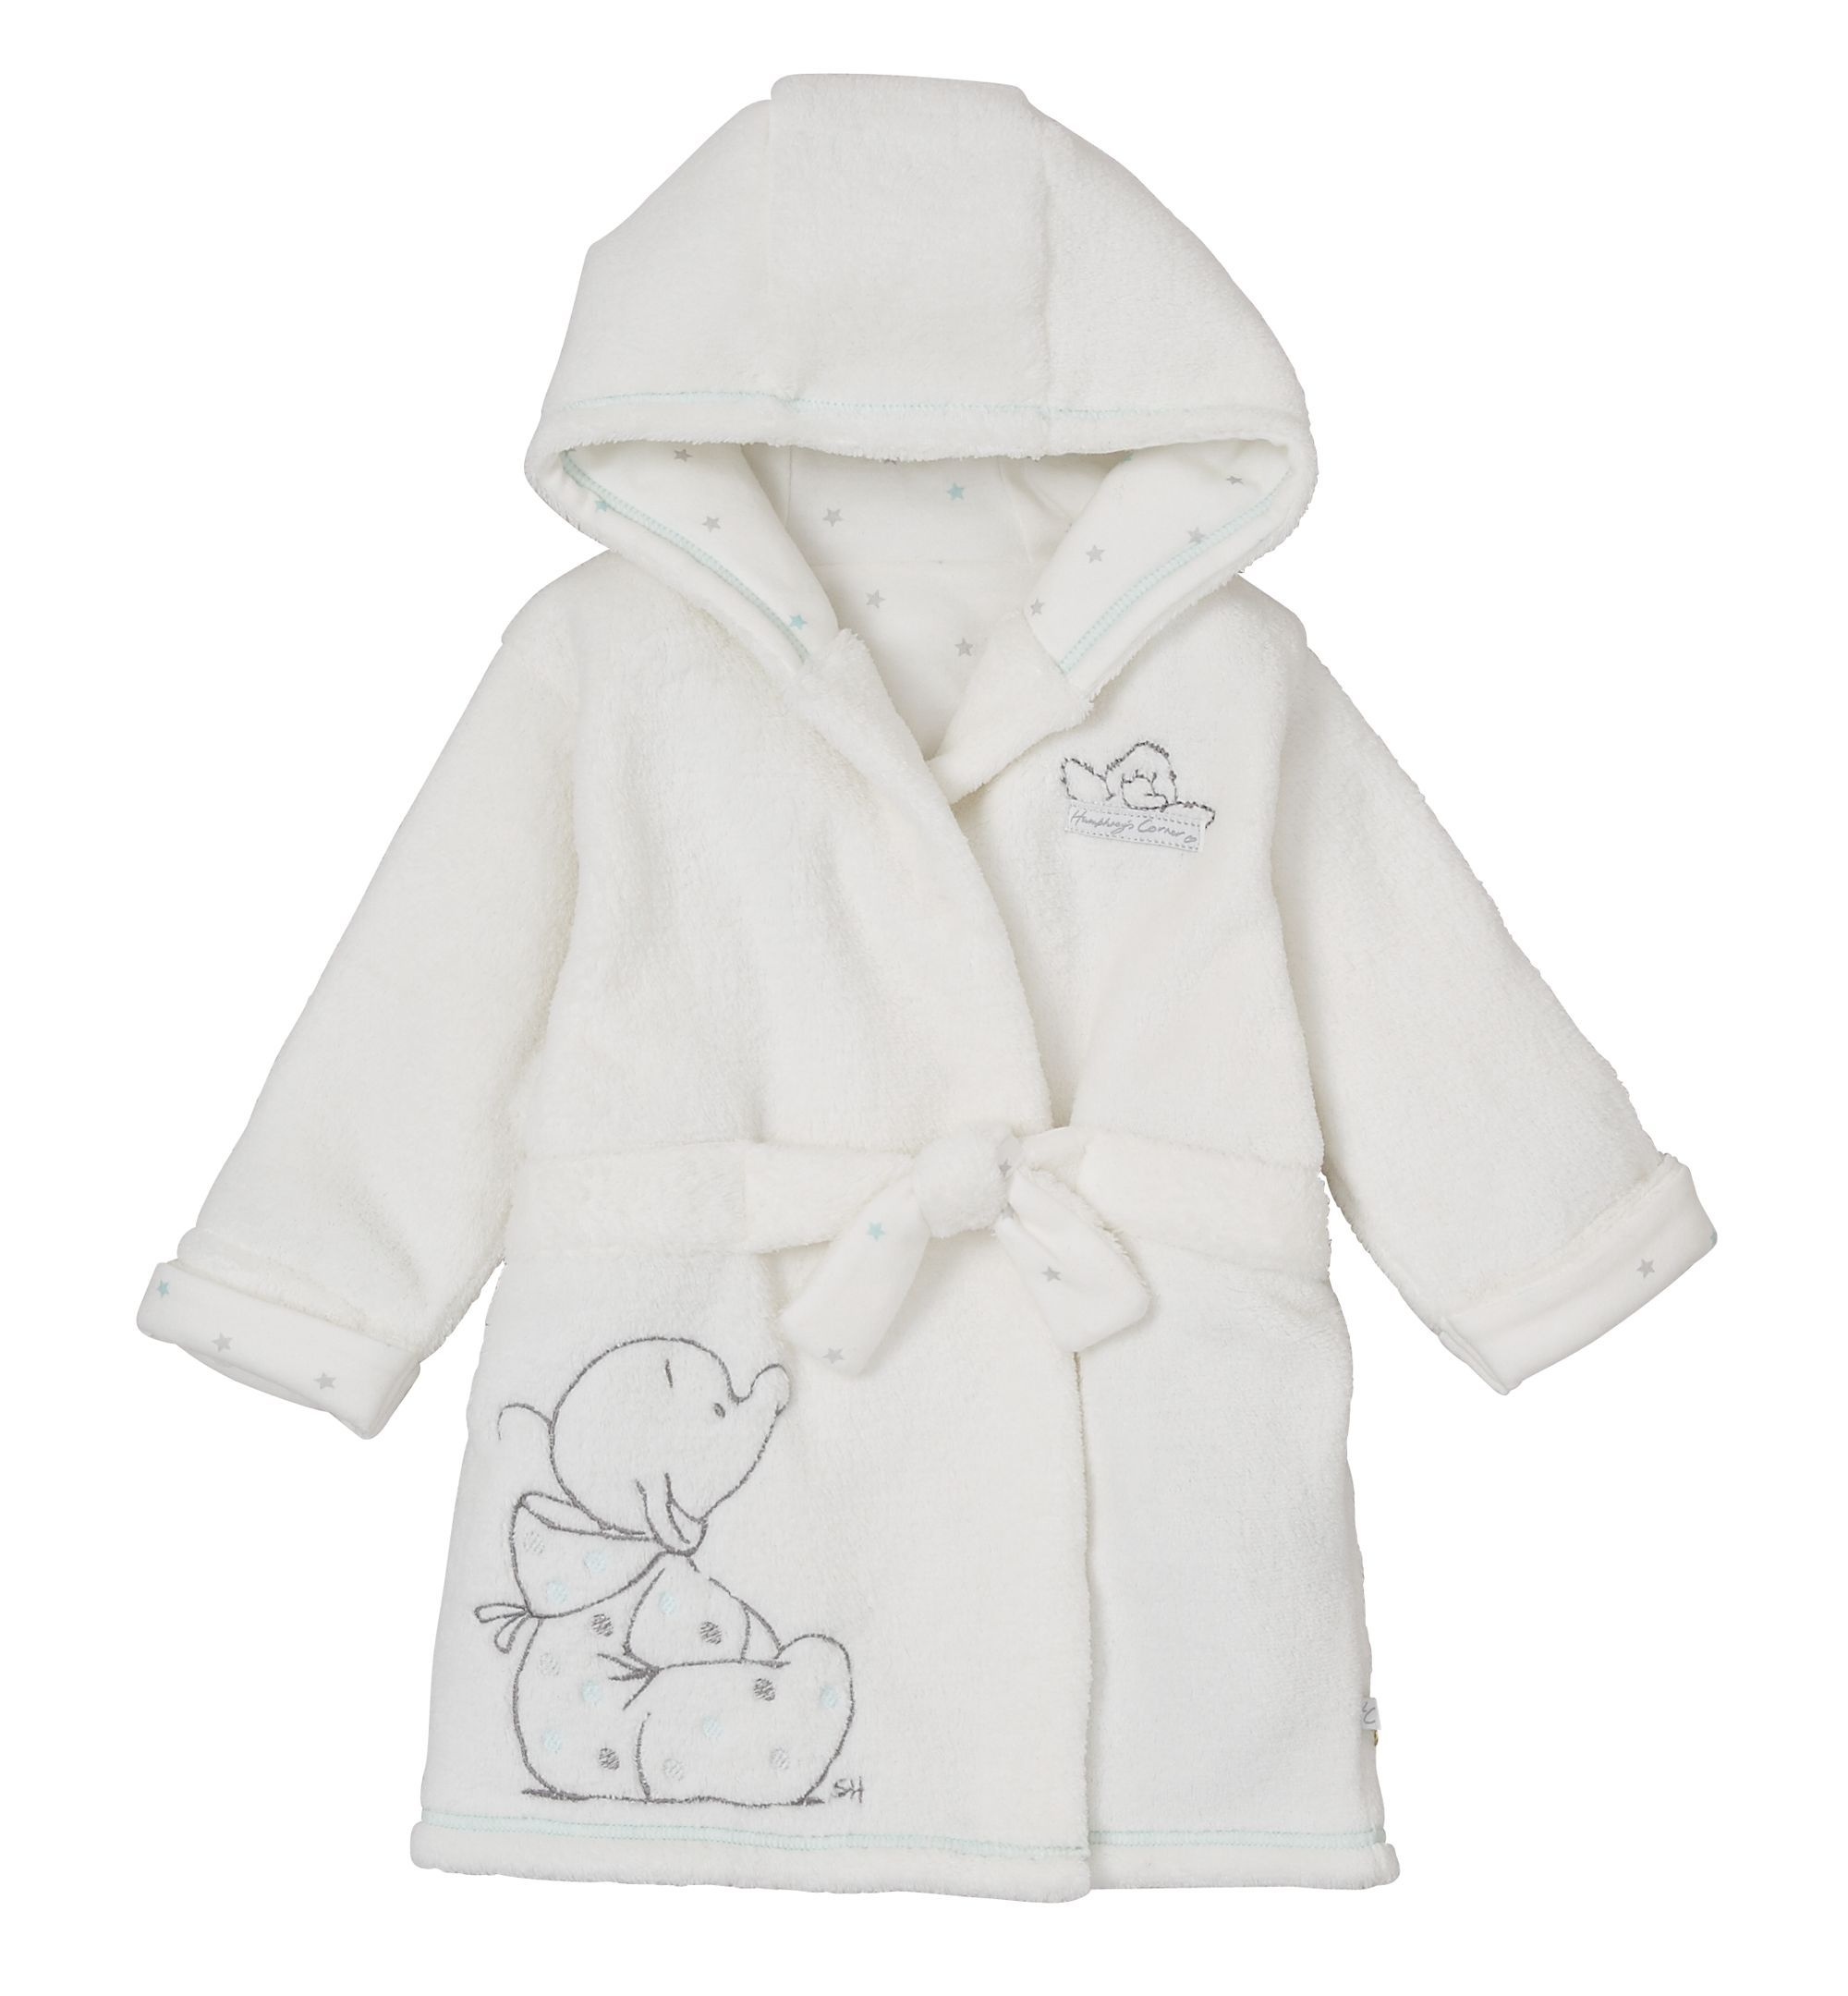 Humphrey\'s Corner Unisex Dressing Gown | Dressings, Unisex and Gowns